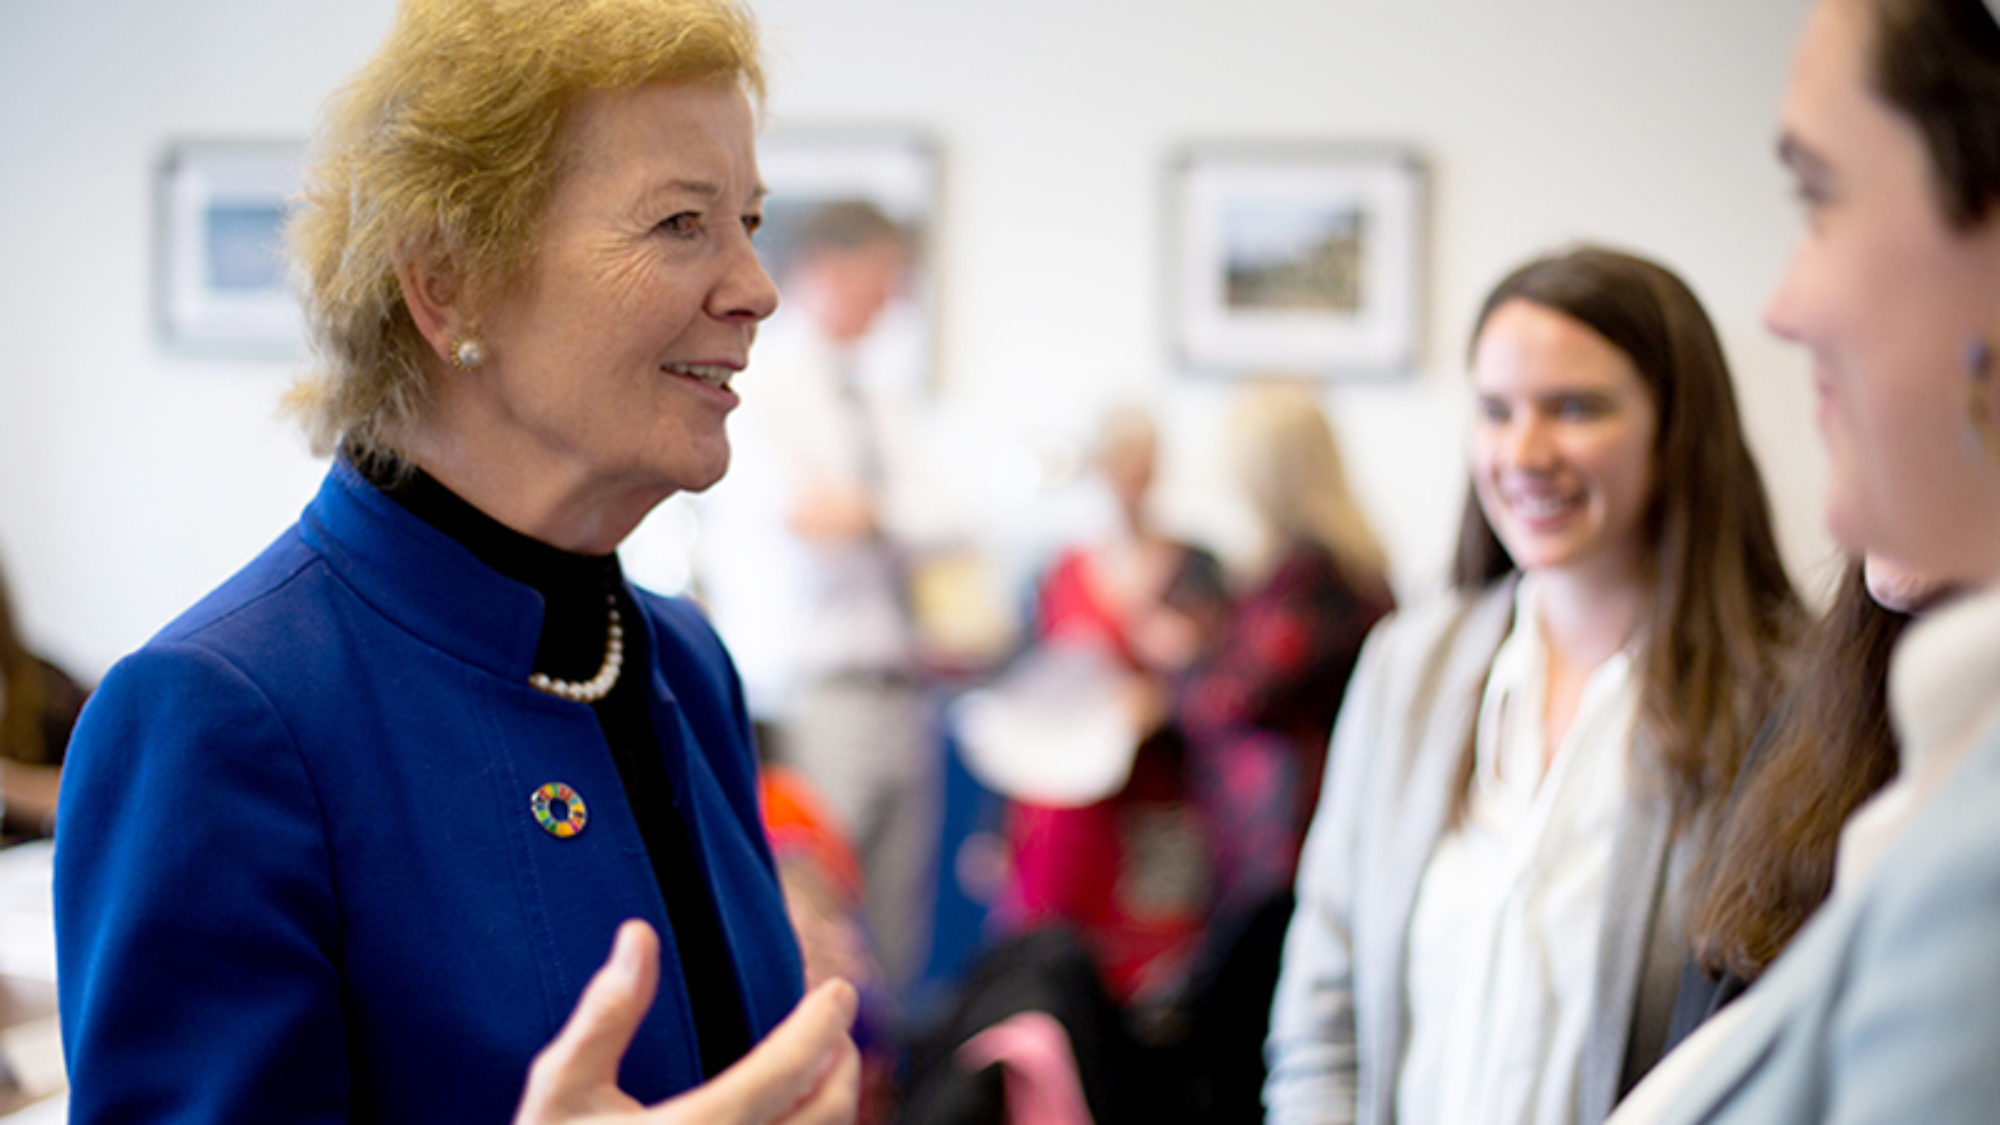 Former Ireland President Mary Robinson stands and talks with a few students with more students in the background